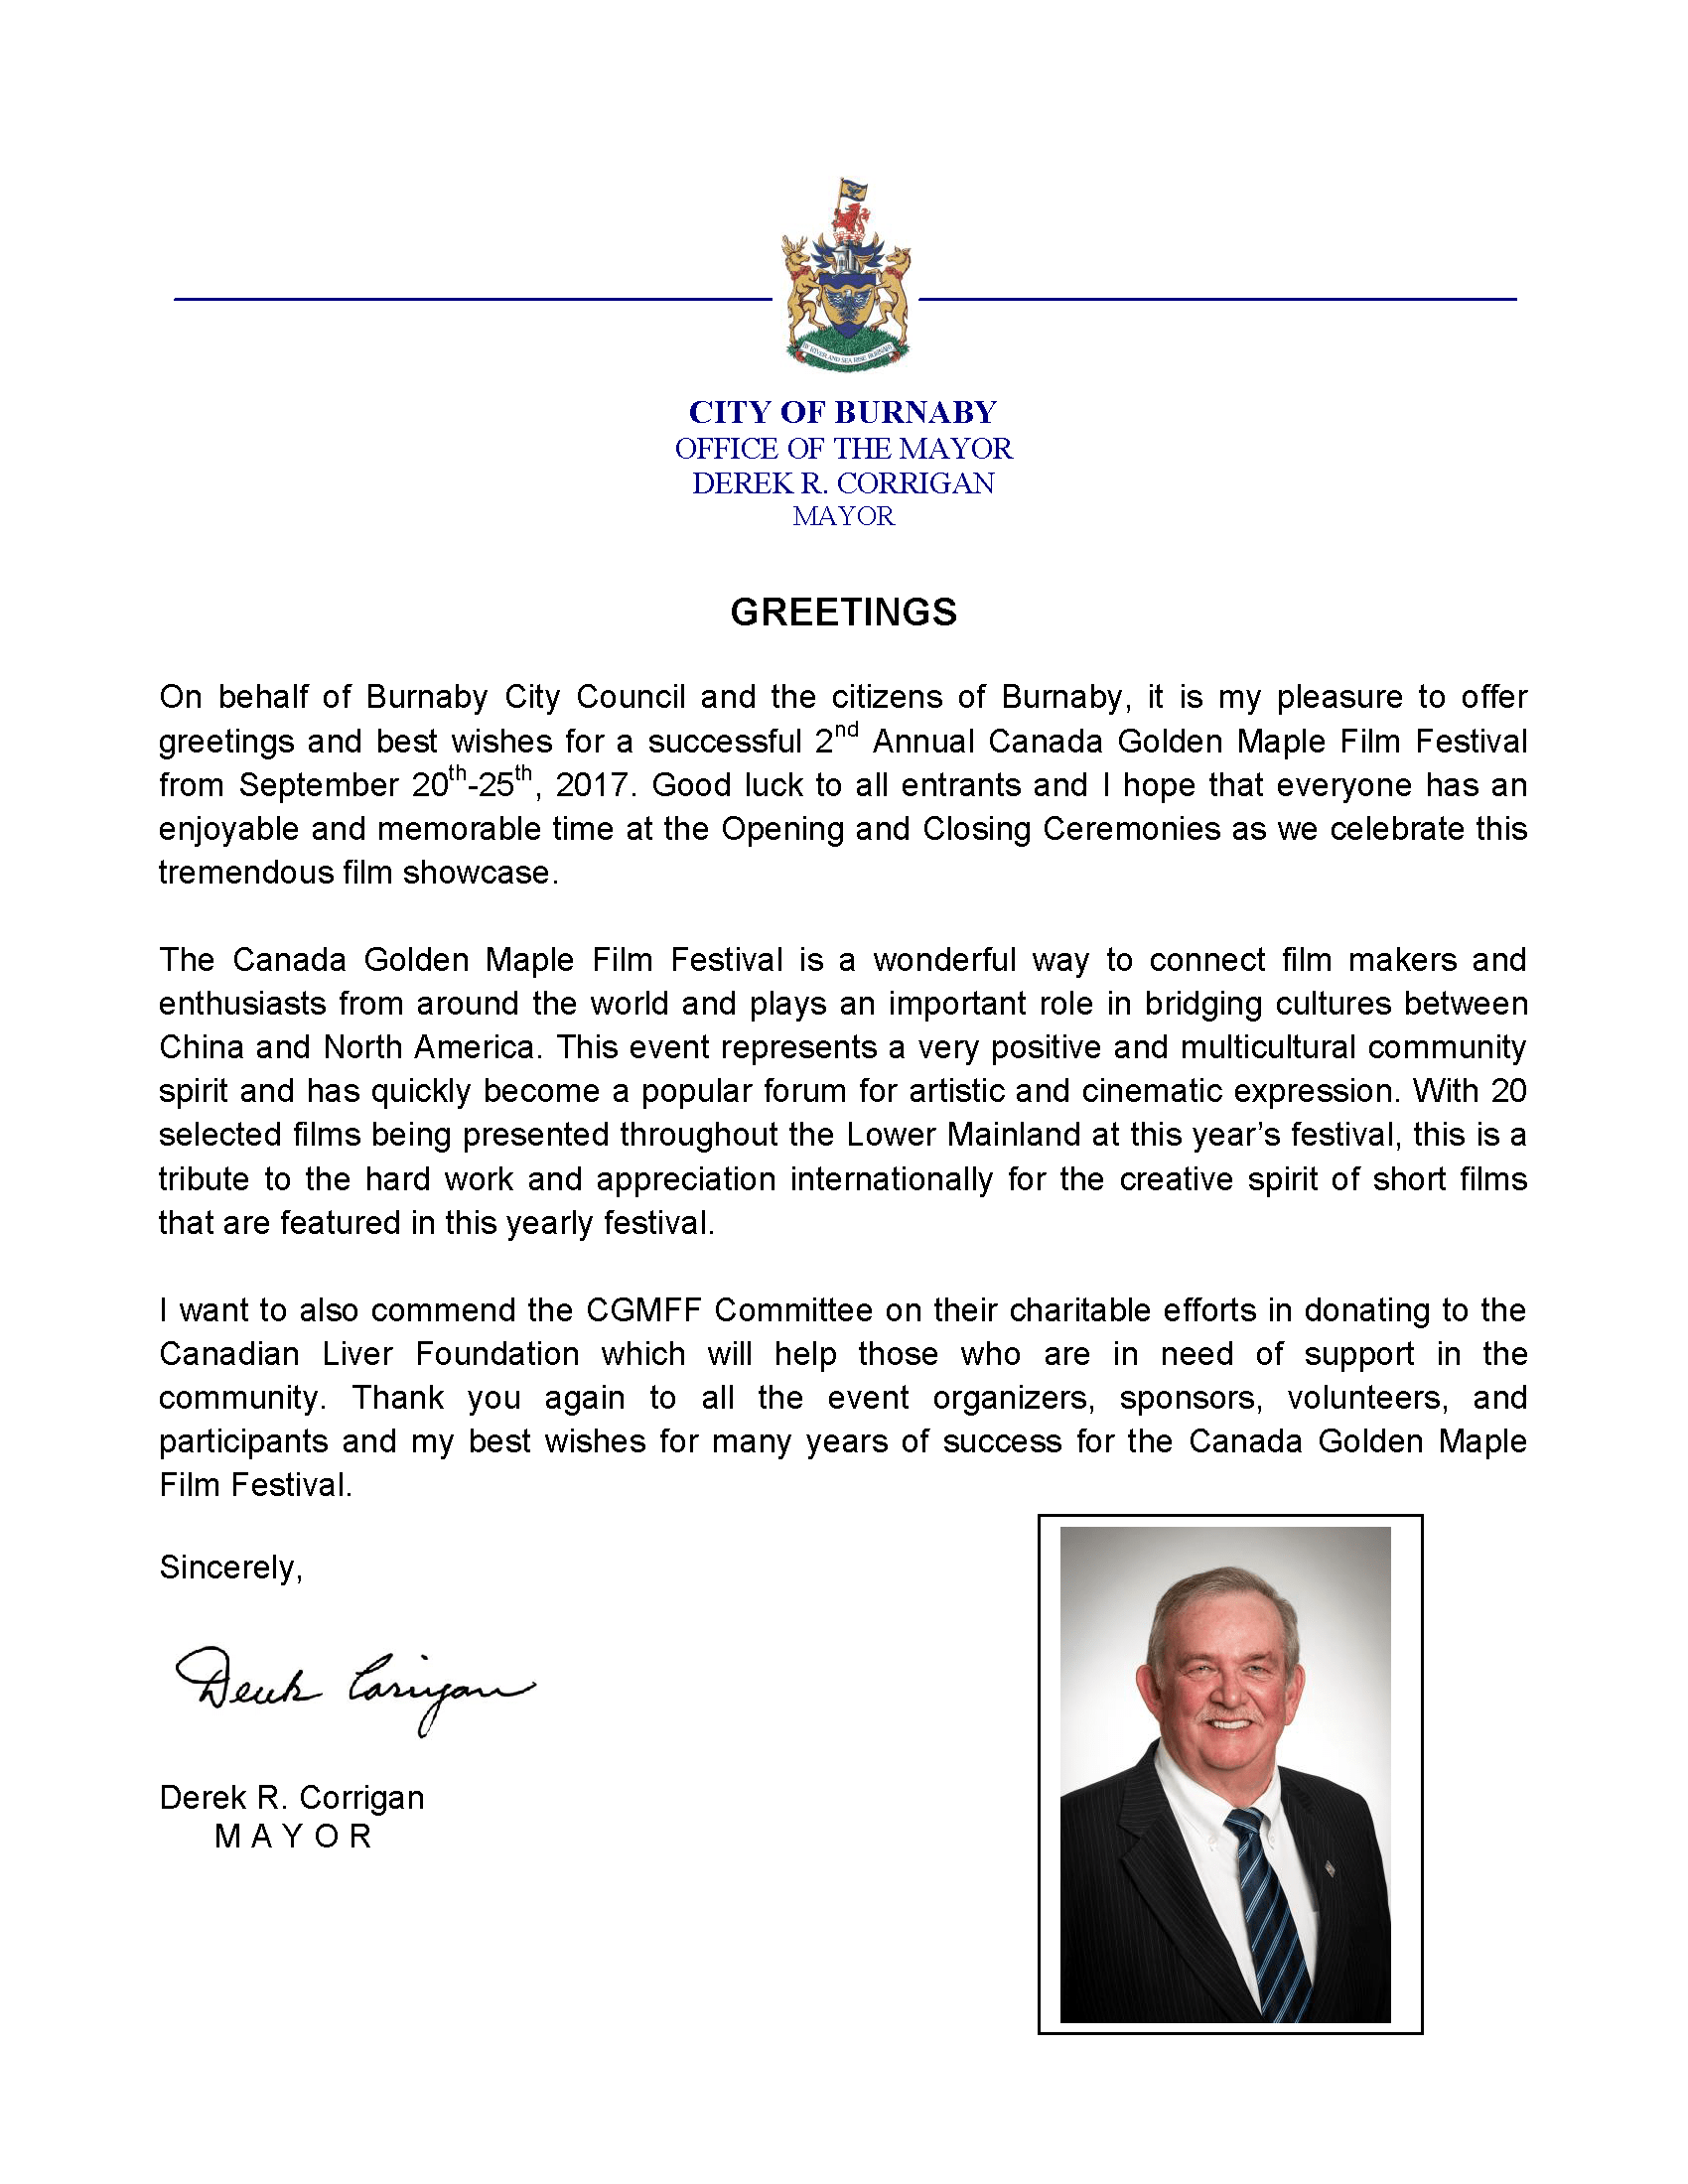 Congratulatory Letter from Derek R. Corrigan, Mayor of Burnaby